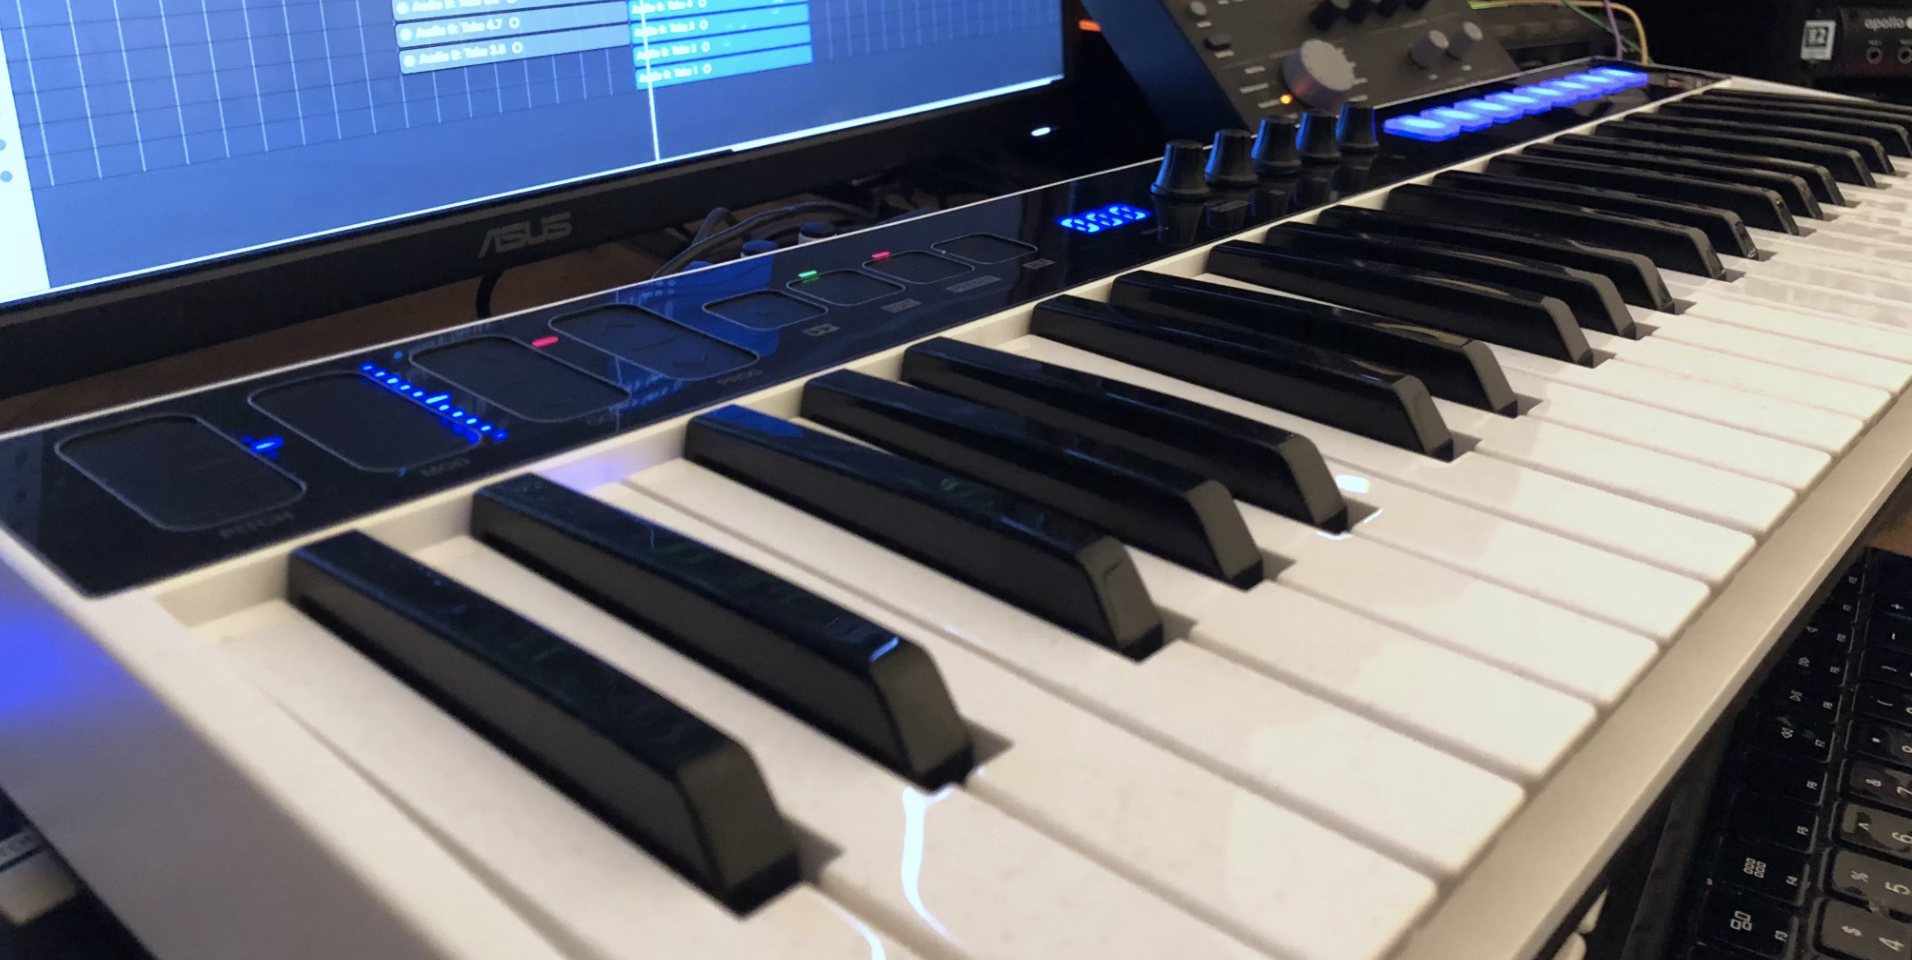 Logic Pros: What's new in iOS & Mac music production this